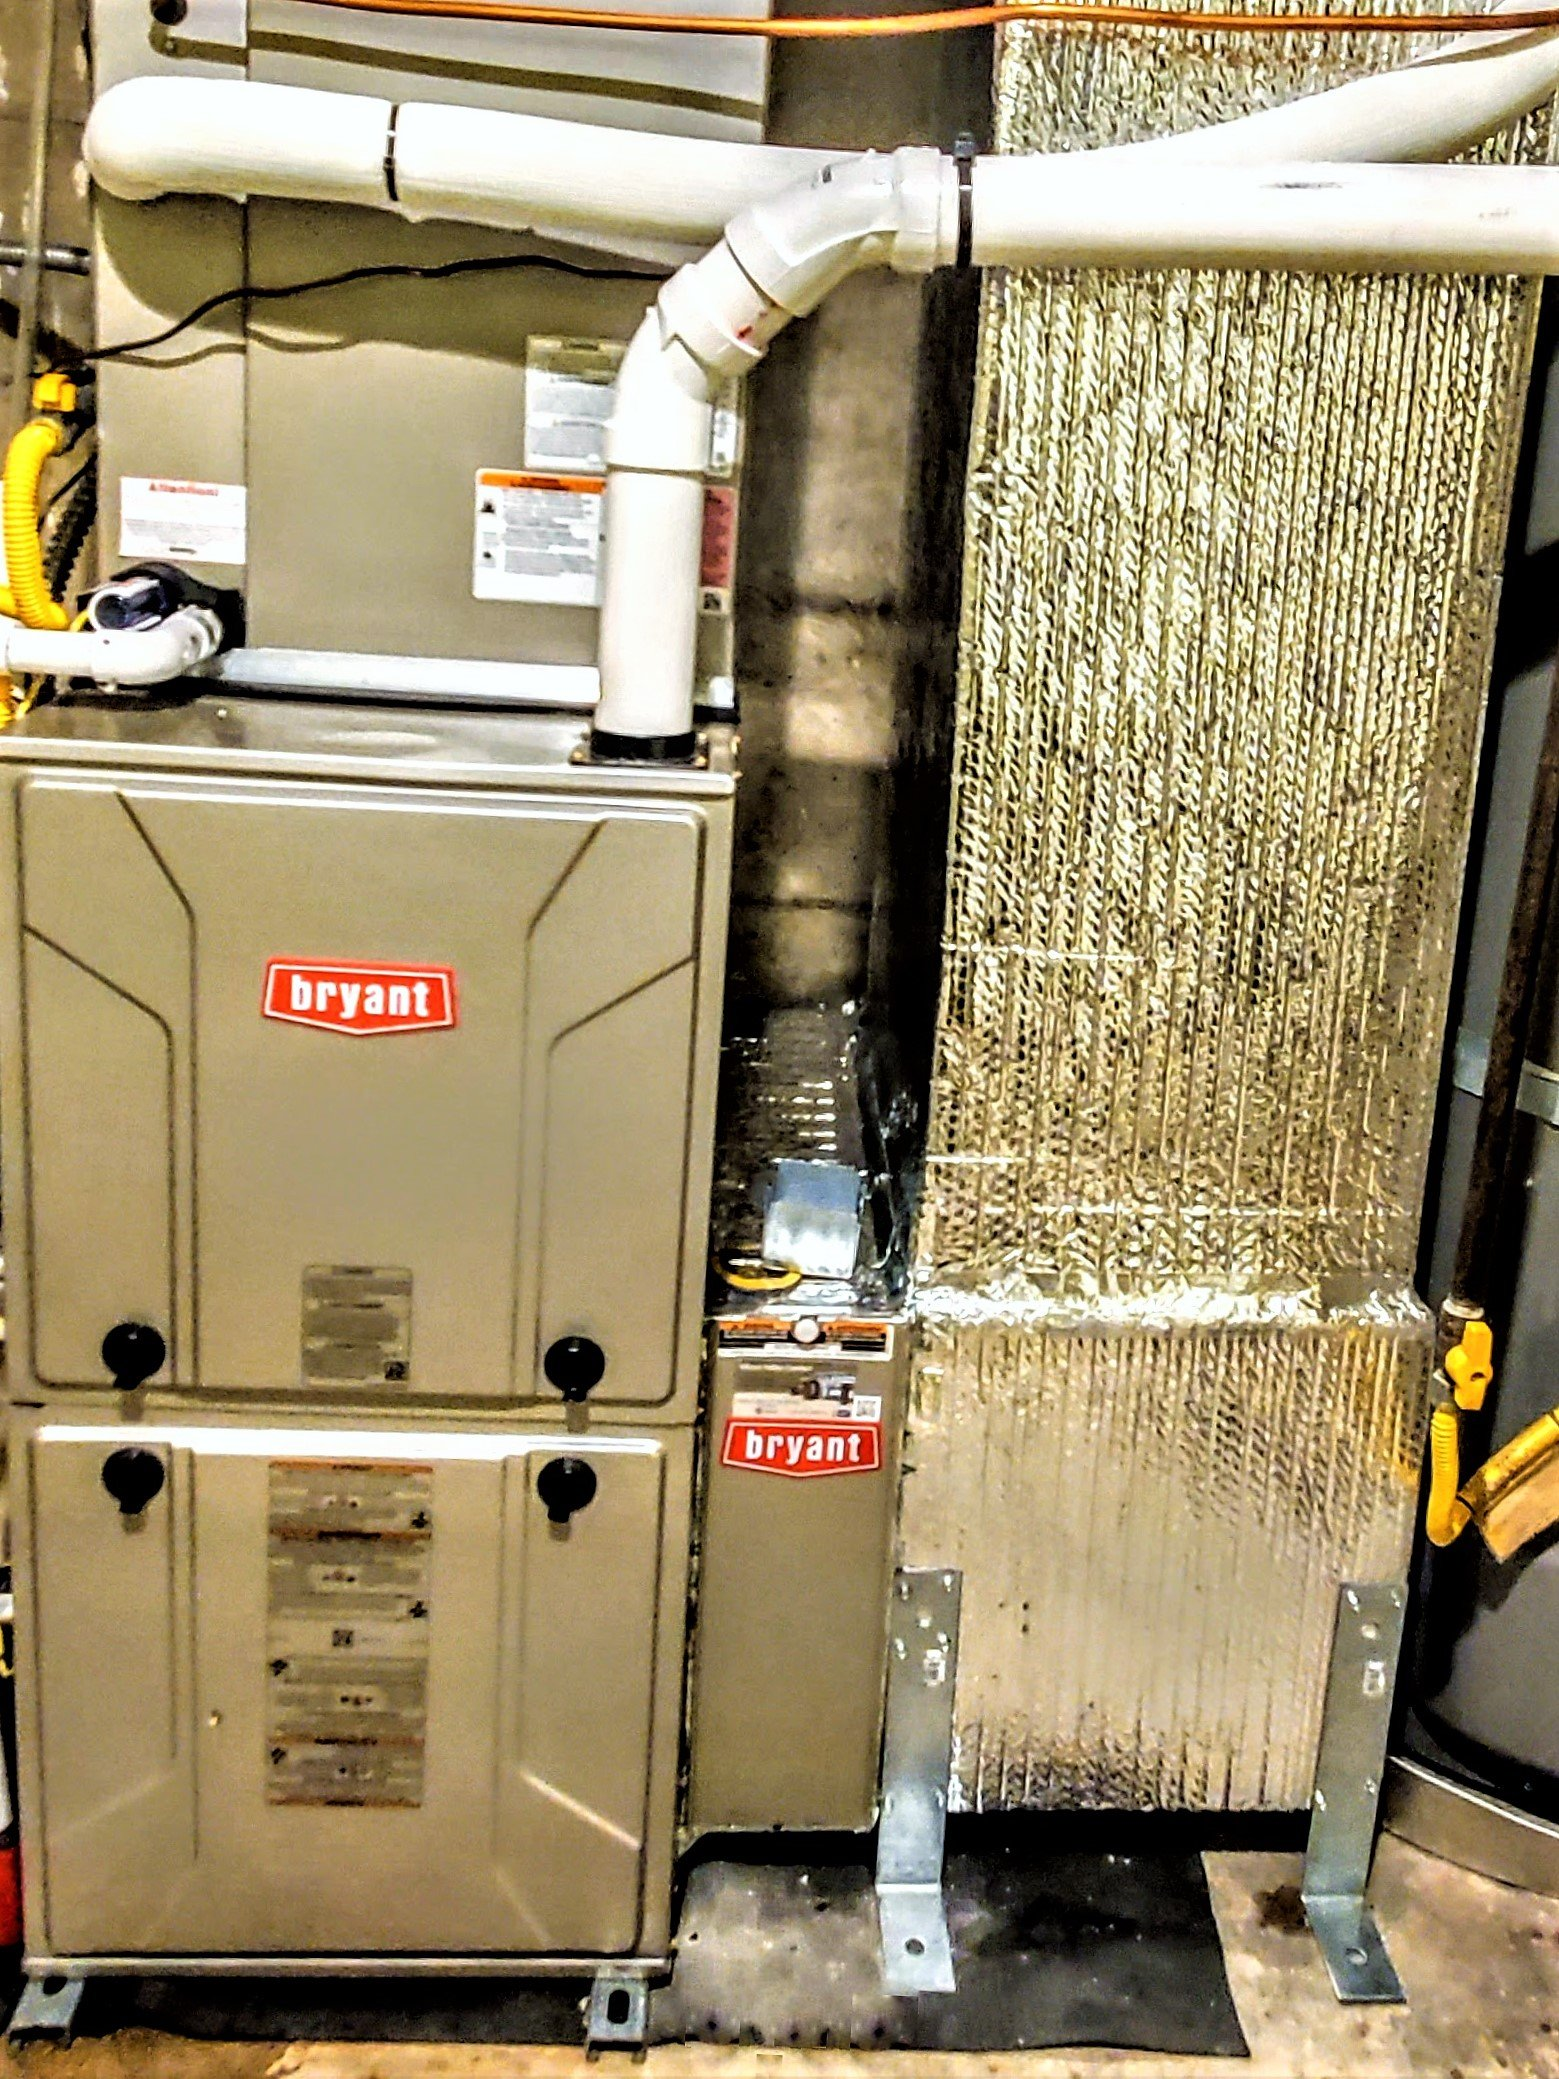 Bryant Evolution Variable-Speed 987B Gas Furnace With Modulating Gas Valve Regulator, Installed In West San Jose